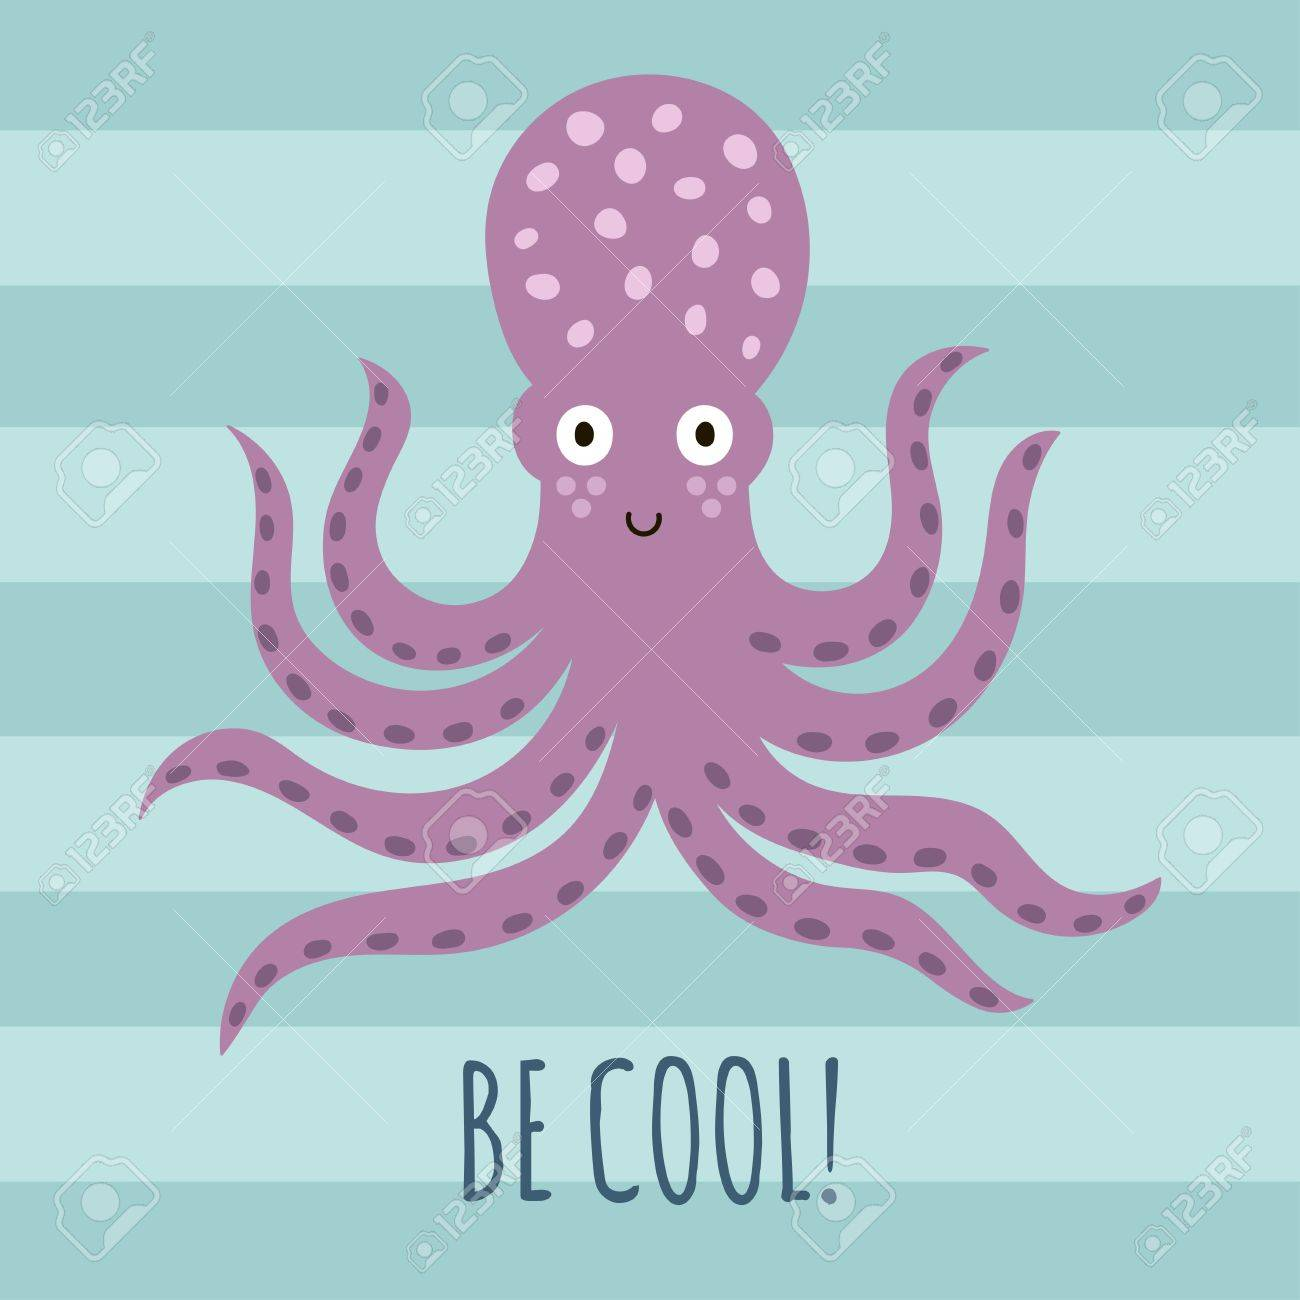 Cool Octopus Art Be Cool Greeting Card With Cute Octopus